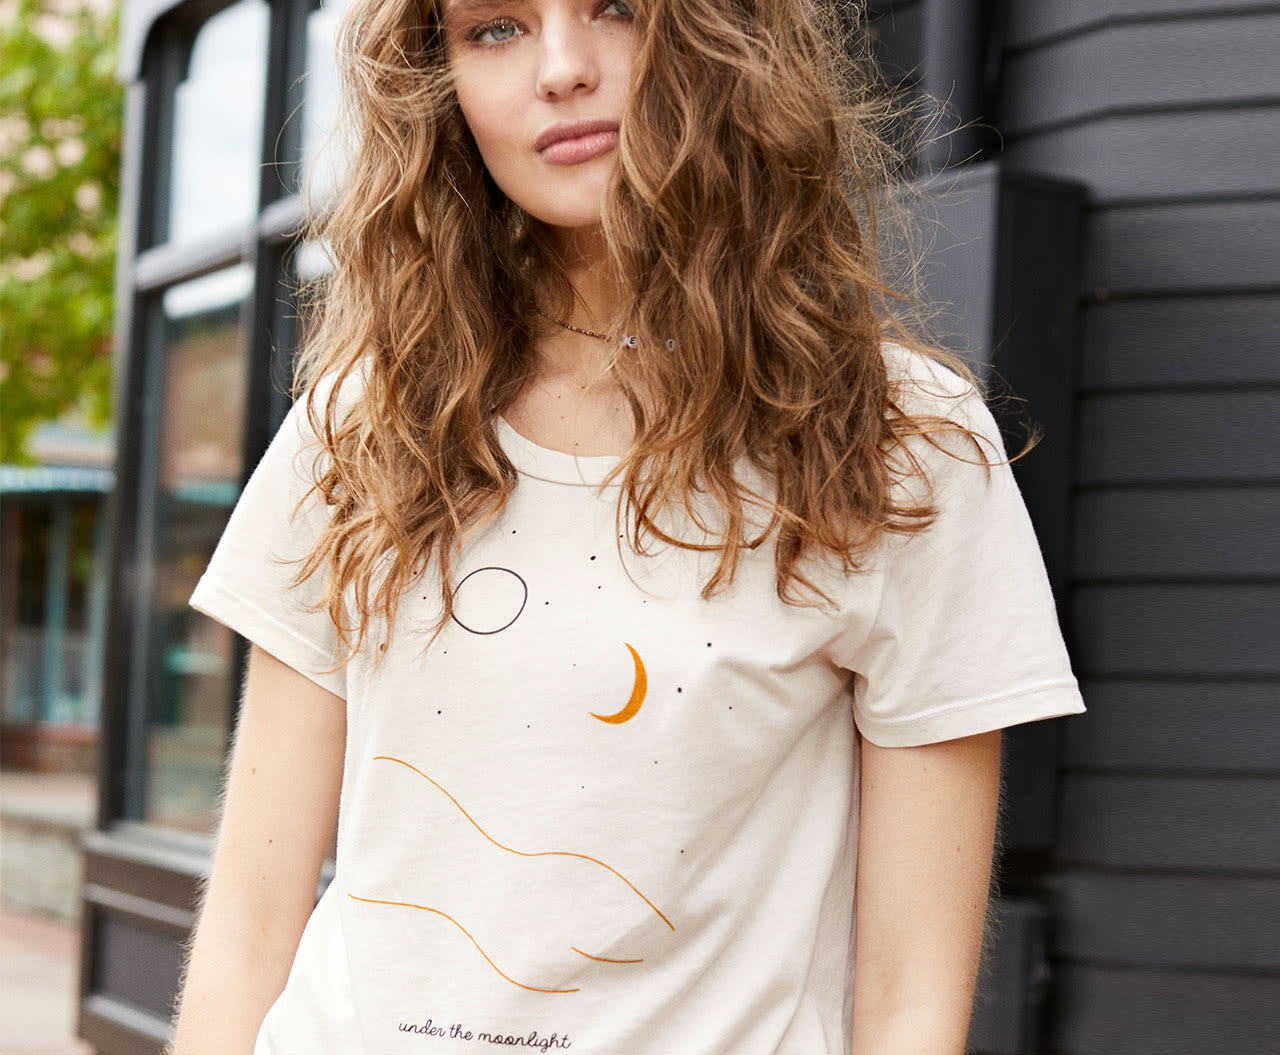 cc373a337 Graphic Tees - Graphic T Shirts for Women | Free People